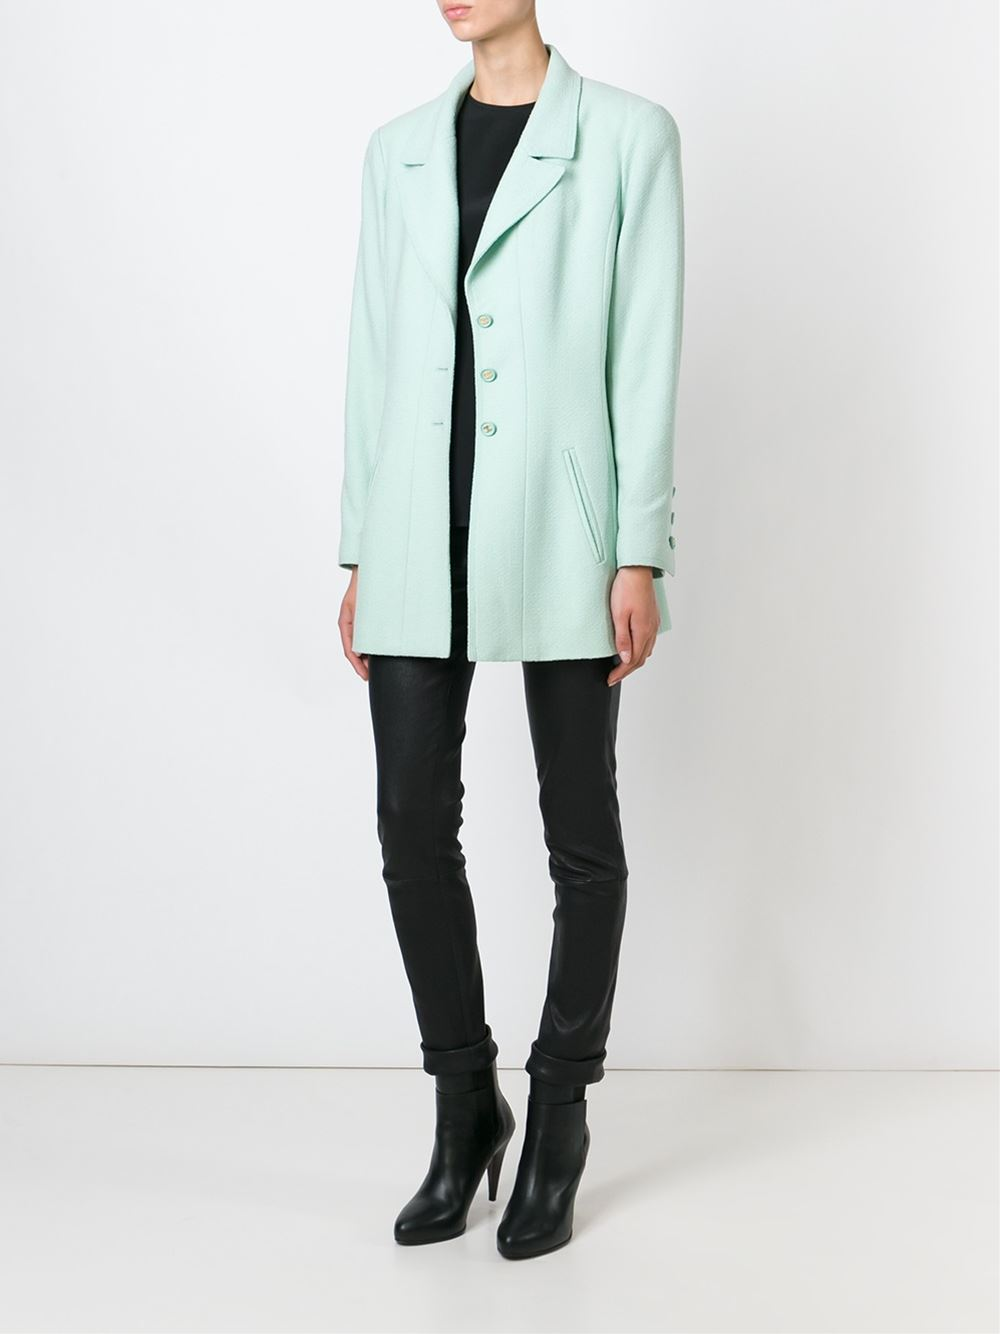 chanel-vintage-boucle-knit-blazer_thecolorharmony